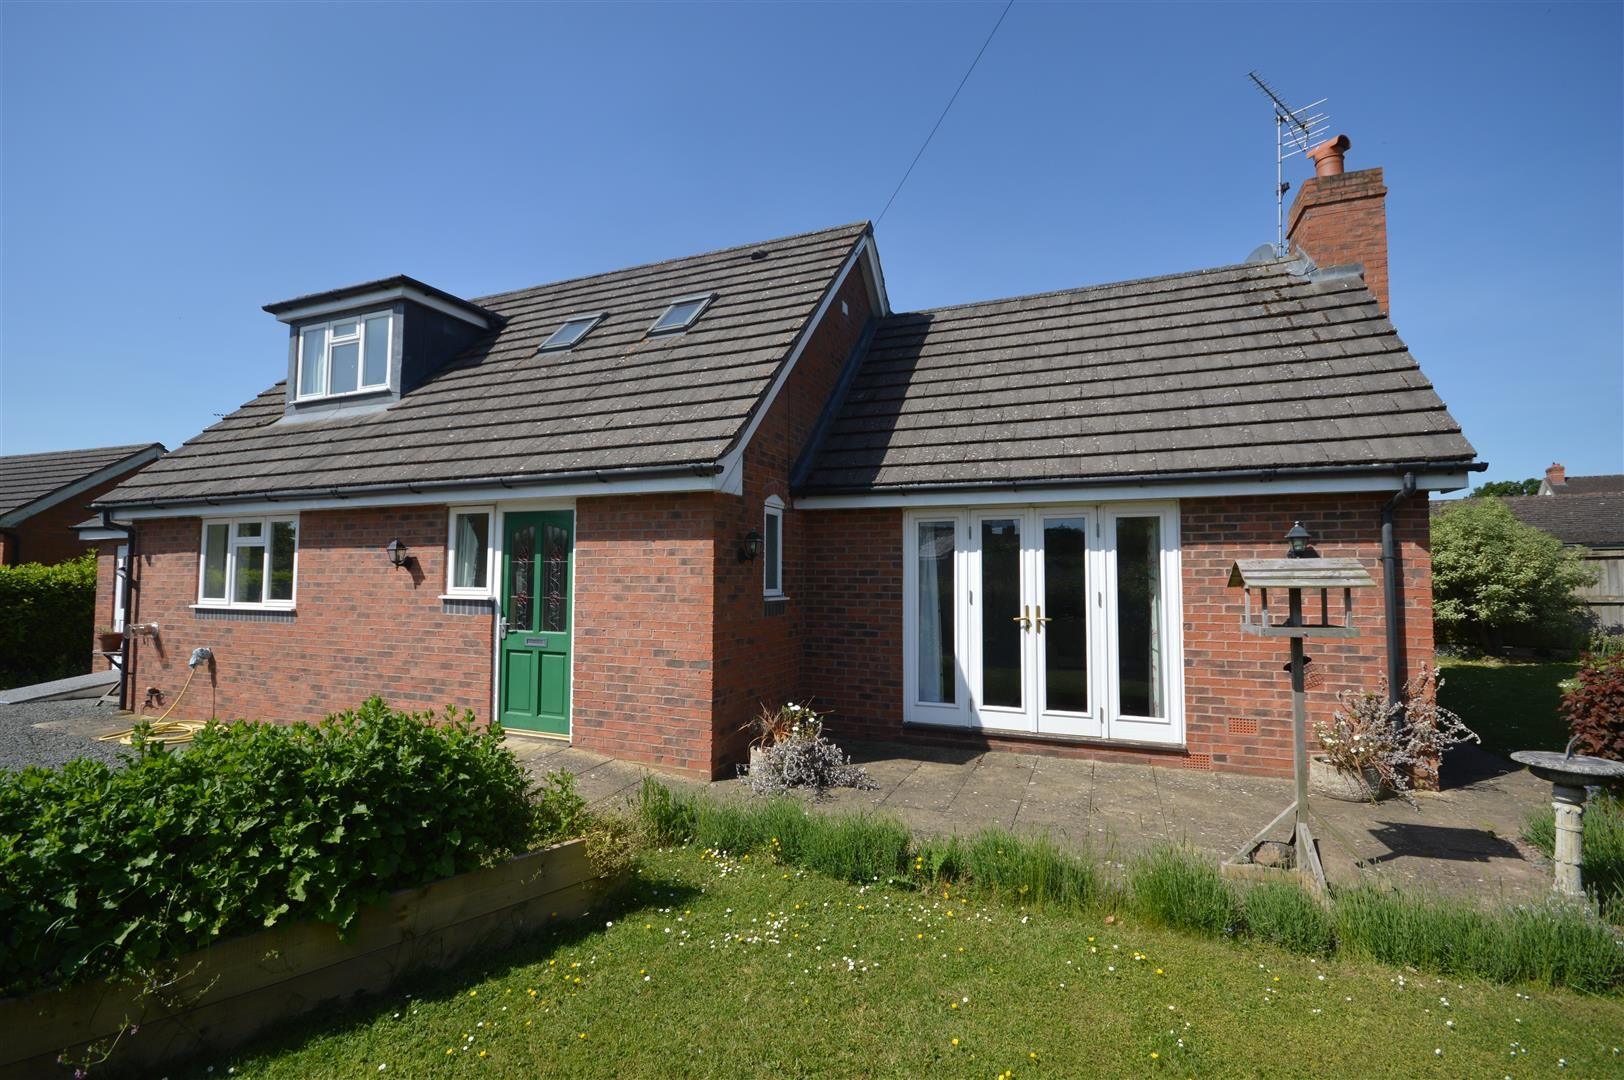 3 bed detached-bungalow for sale in Almeley  - Property Image 16